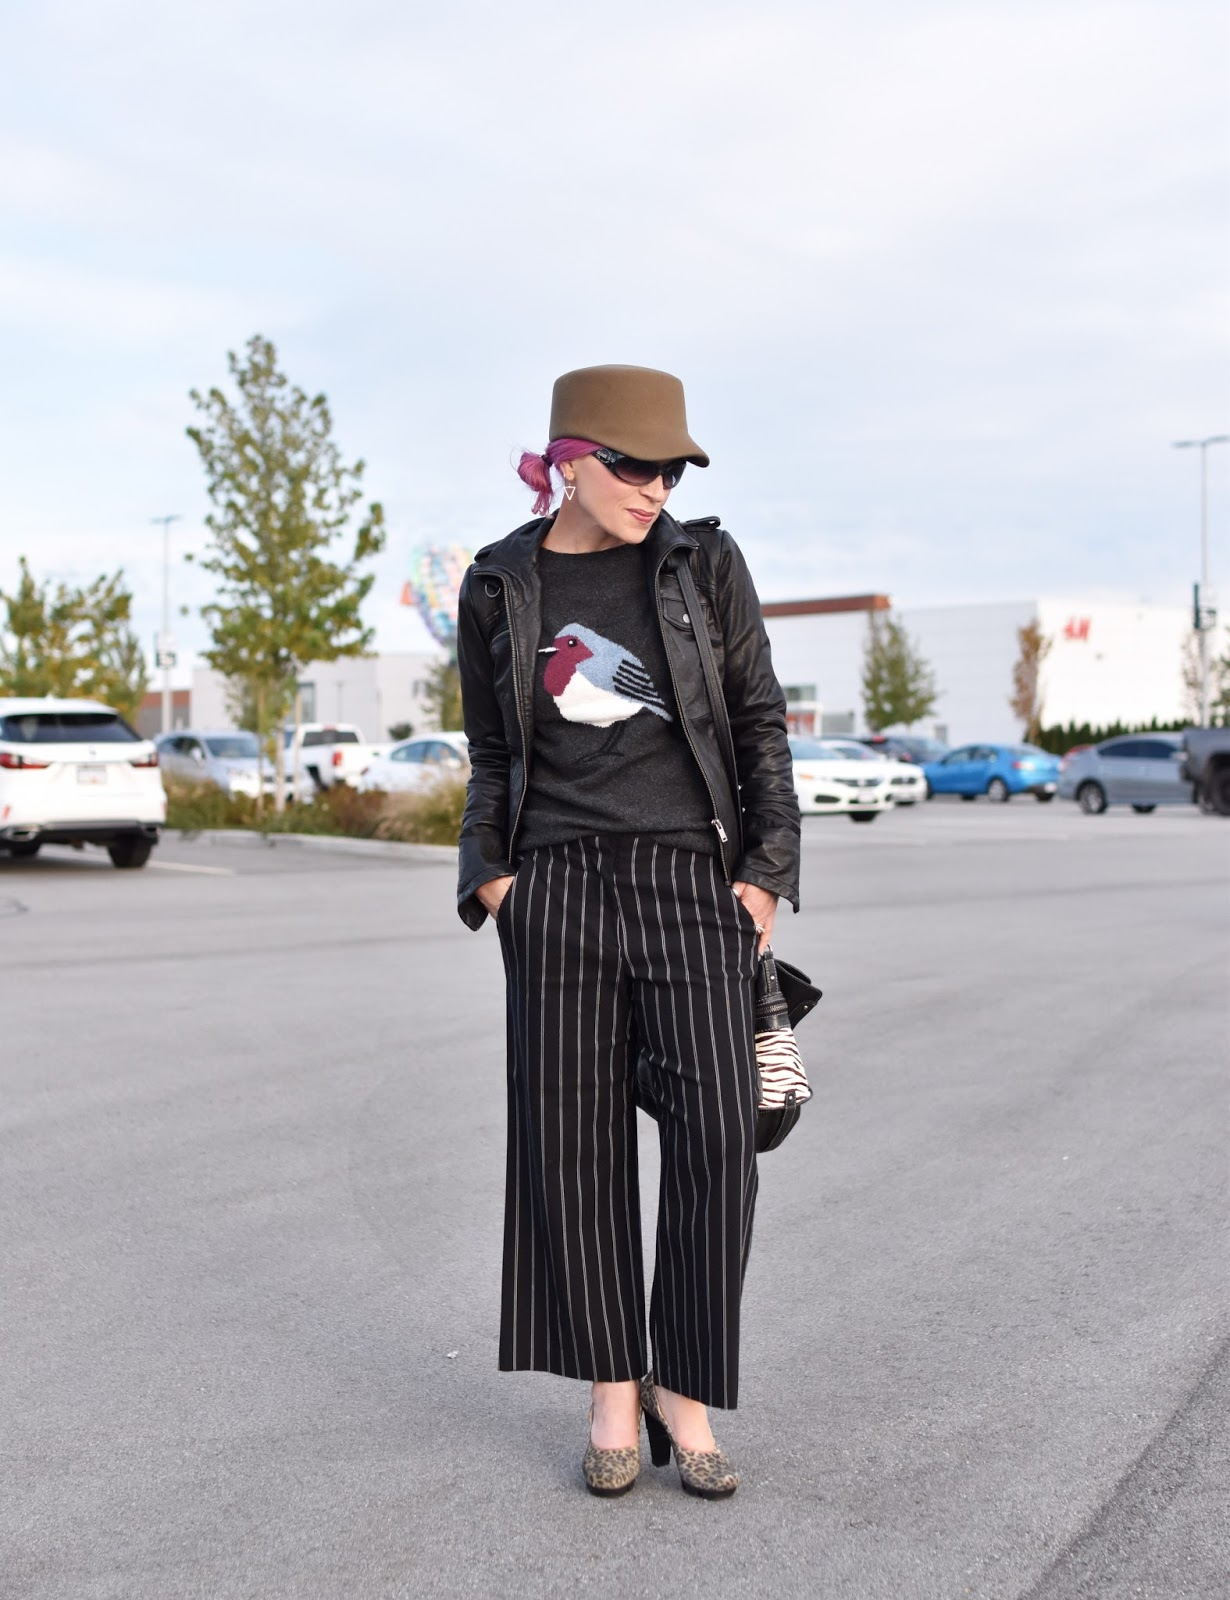 Monika Faulkner outfit inspiration - bird-motif sweater, cropped striped trousers, moto jacket, leopard pumps, military-inspired cap